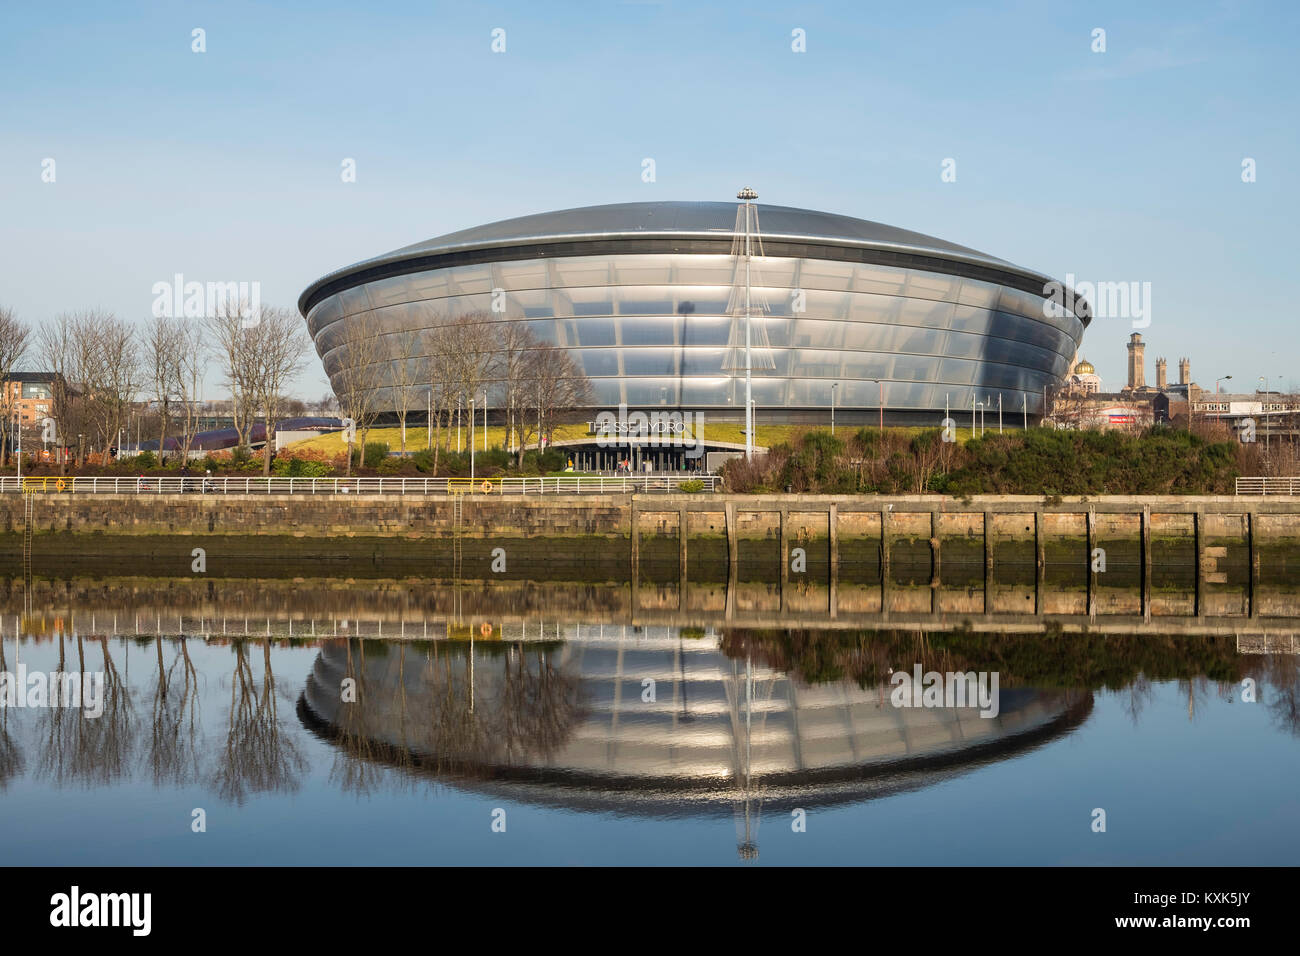 View of SSE Hydro arena beside River Clyde in Glasgow , United Kingdom - Stock Image